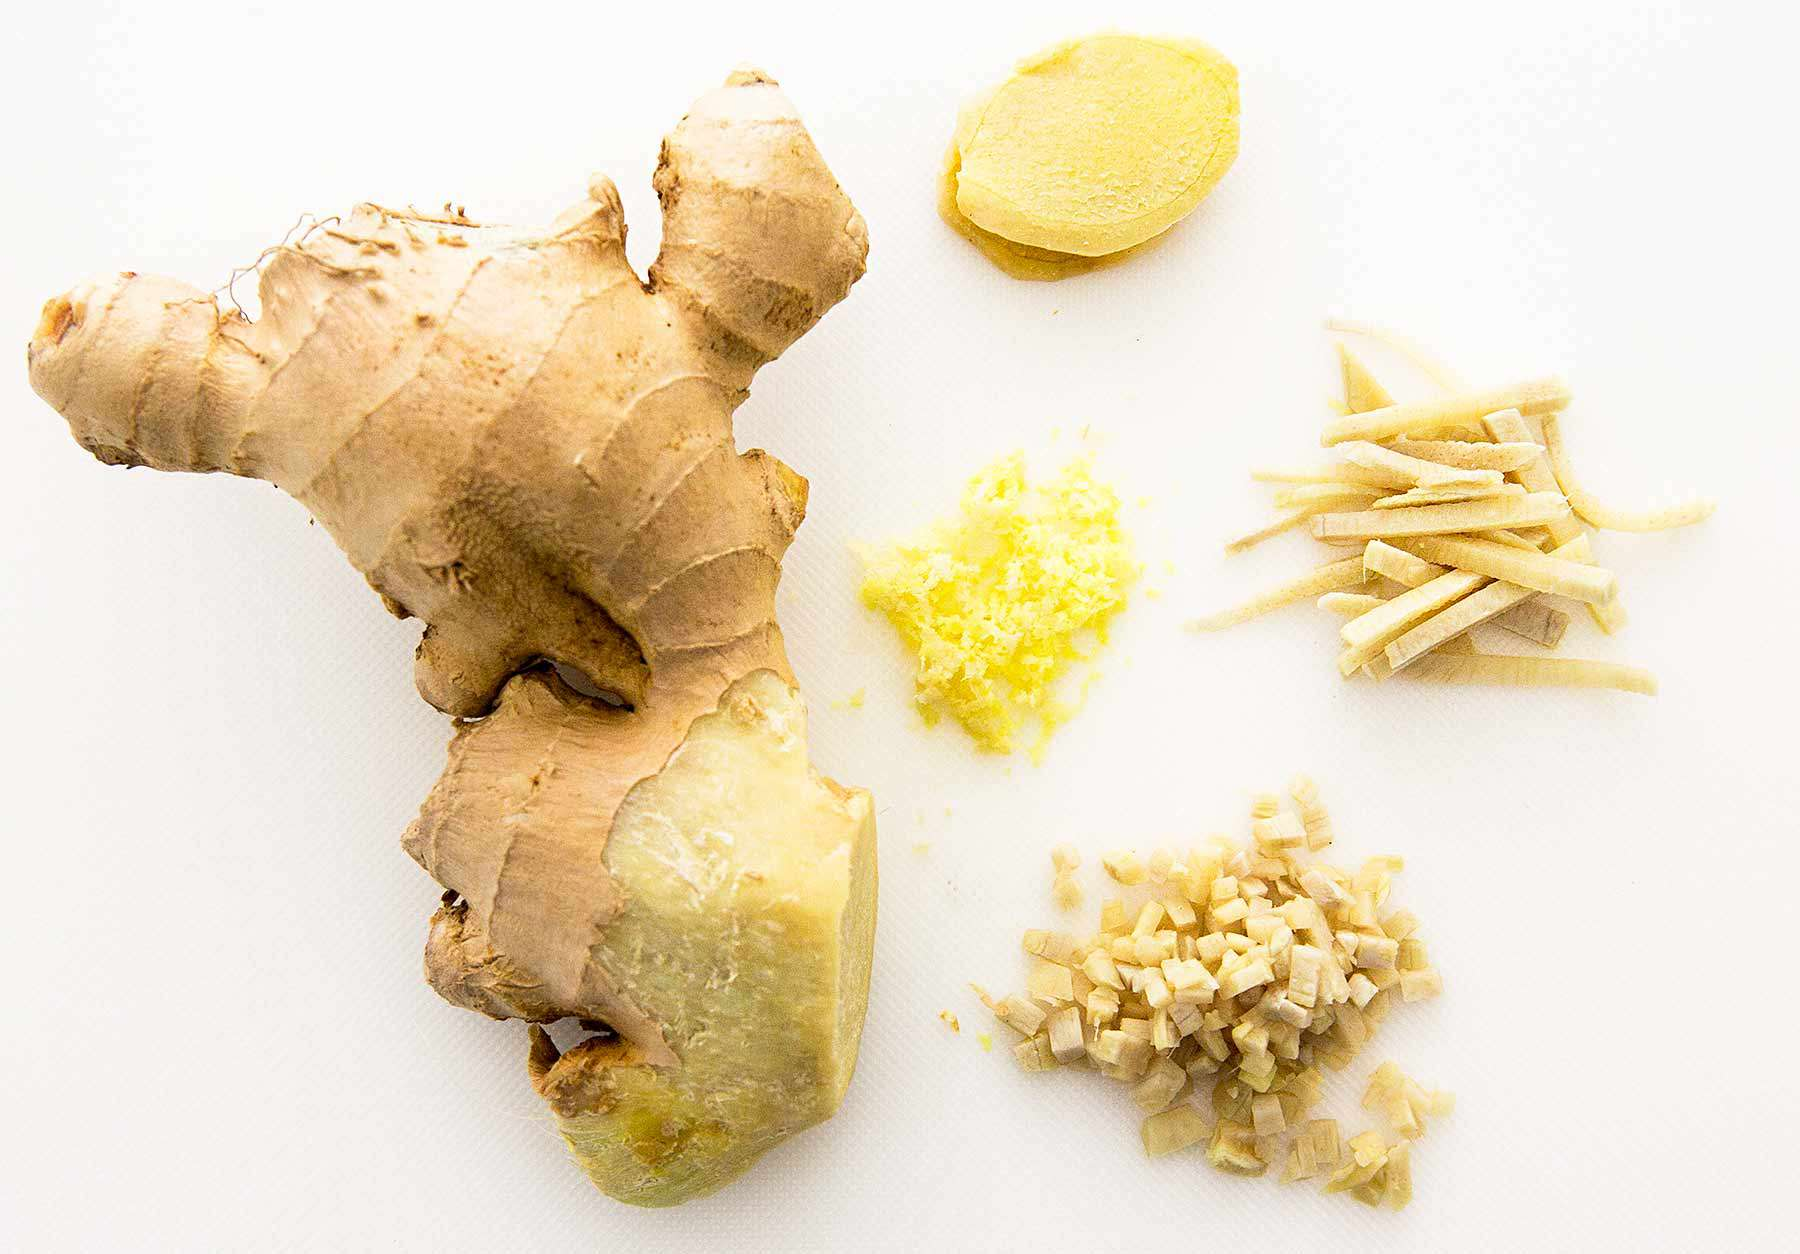 Ginger with different cut methods